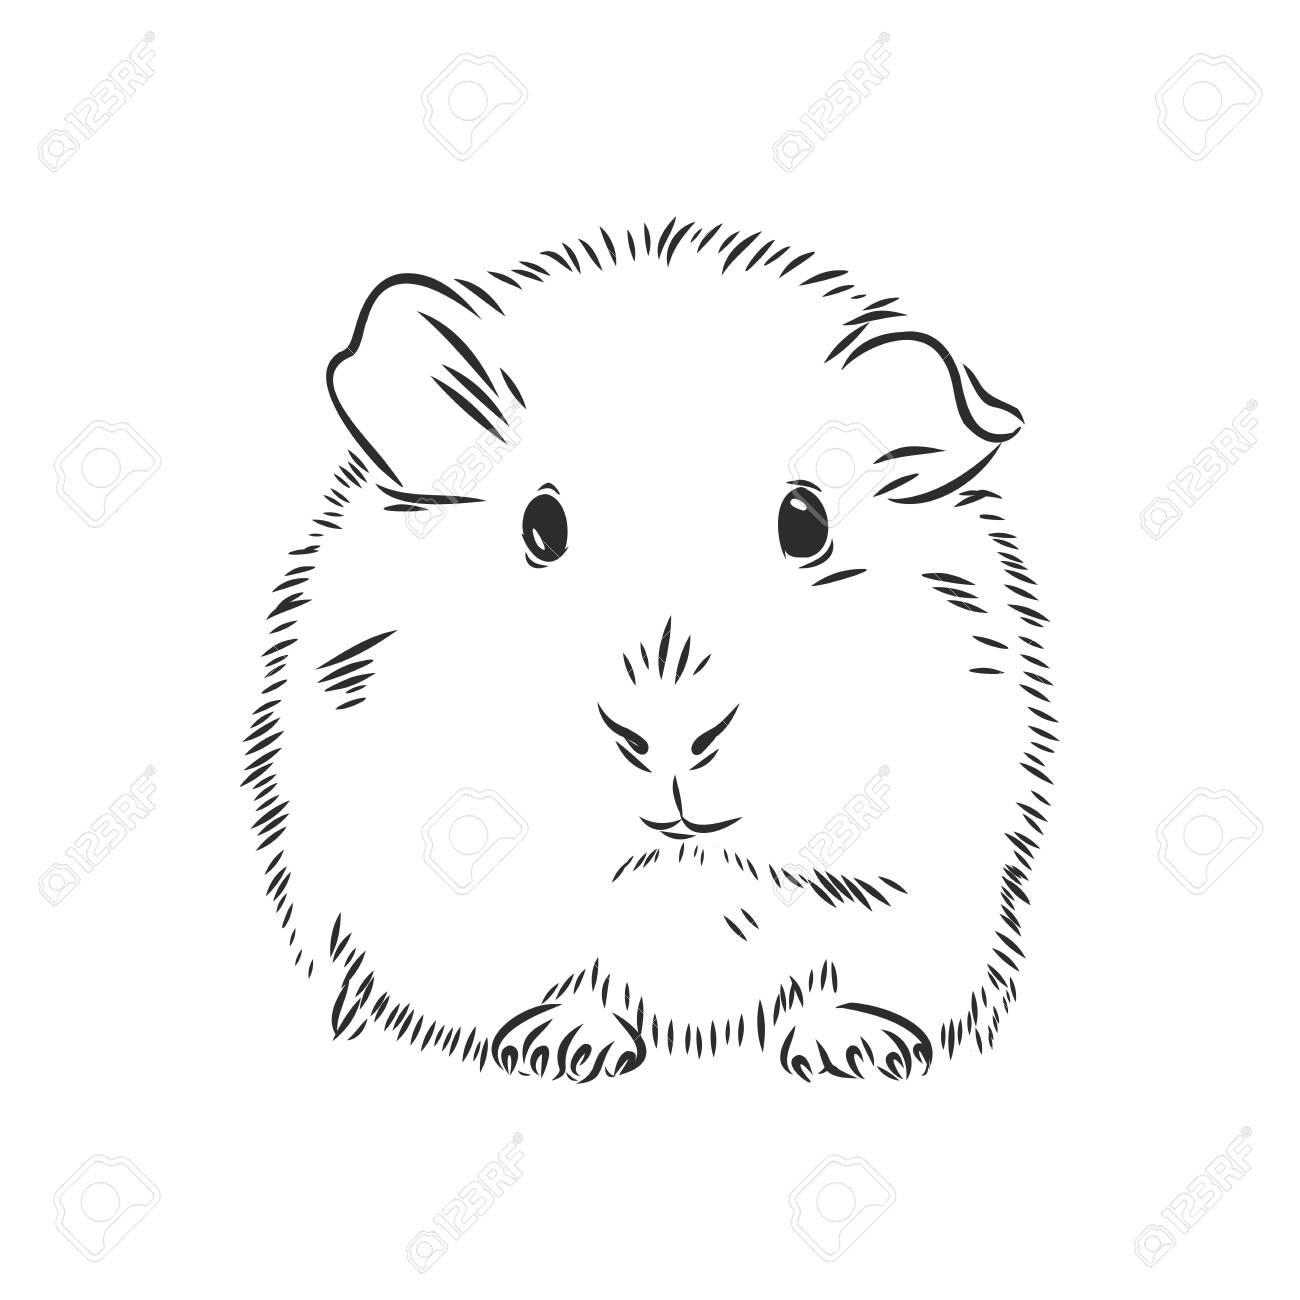 Guinea Pig Or Cavy Inky Hand Drawn Sketch Vector Illustration Royalty Free Cliparts Vectors And Stock Illustration Image 144377232